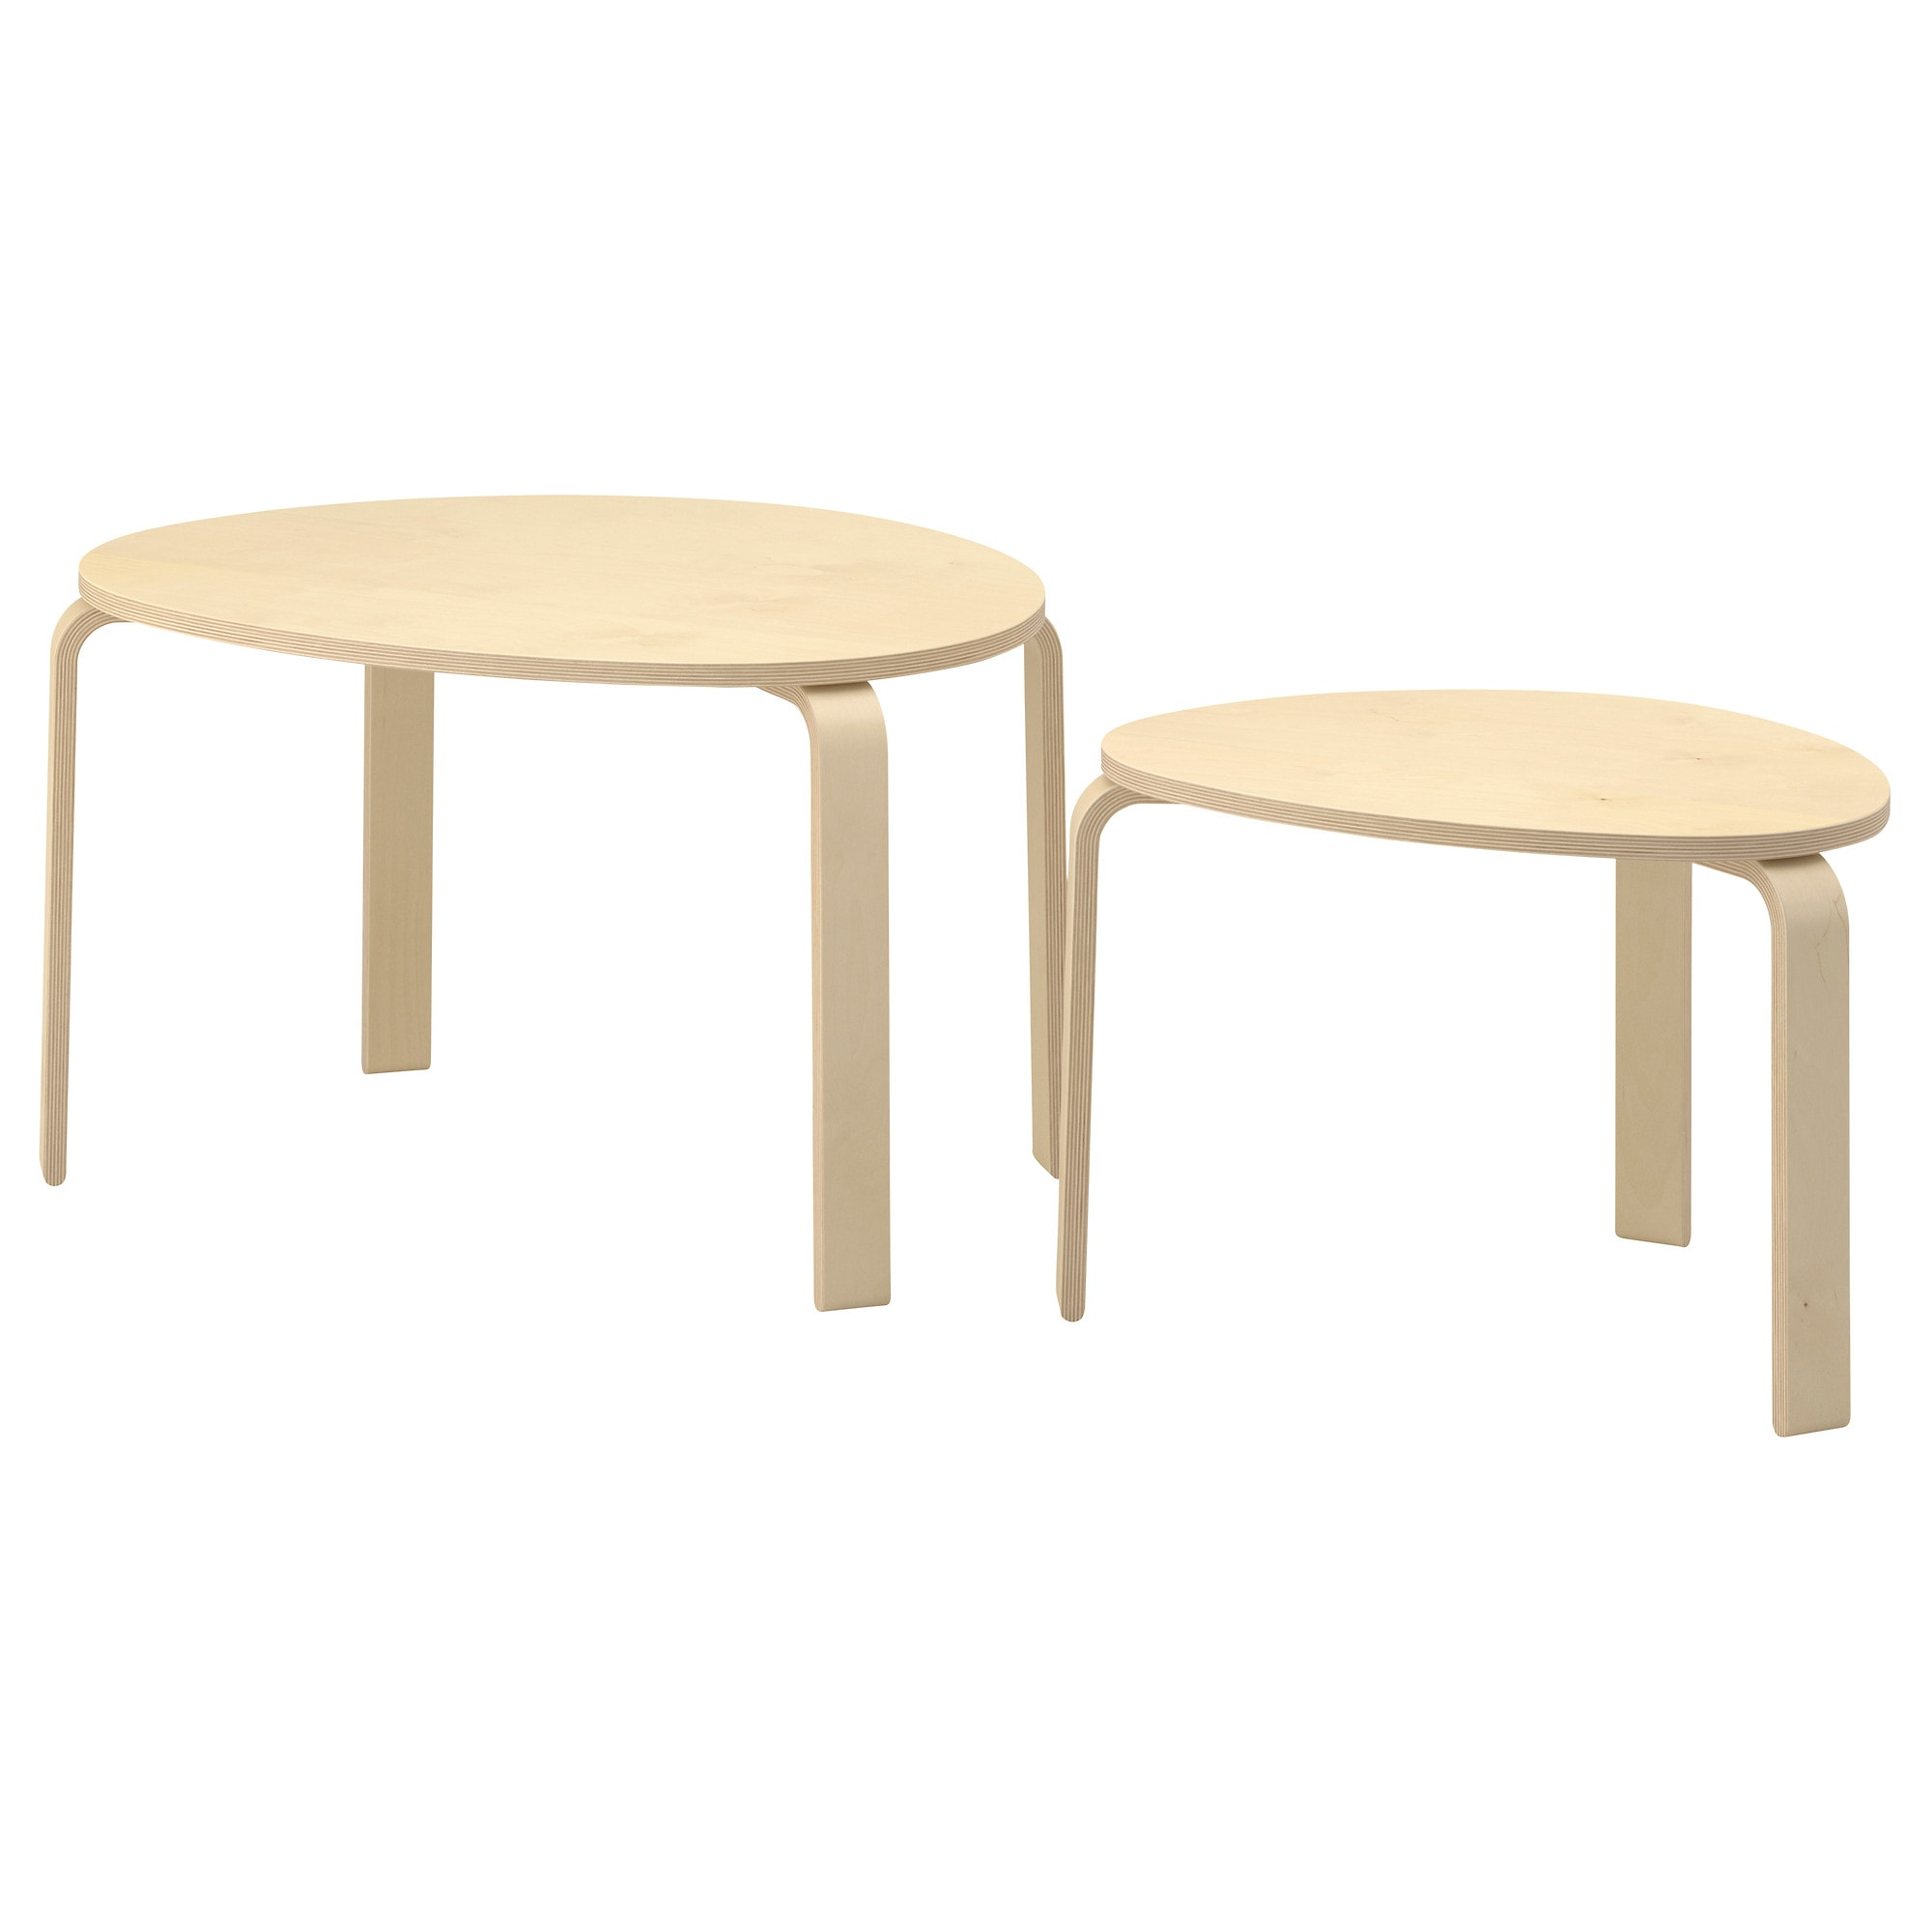 SVALSTA Nesting tables set of 2 birch veneer IKEA